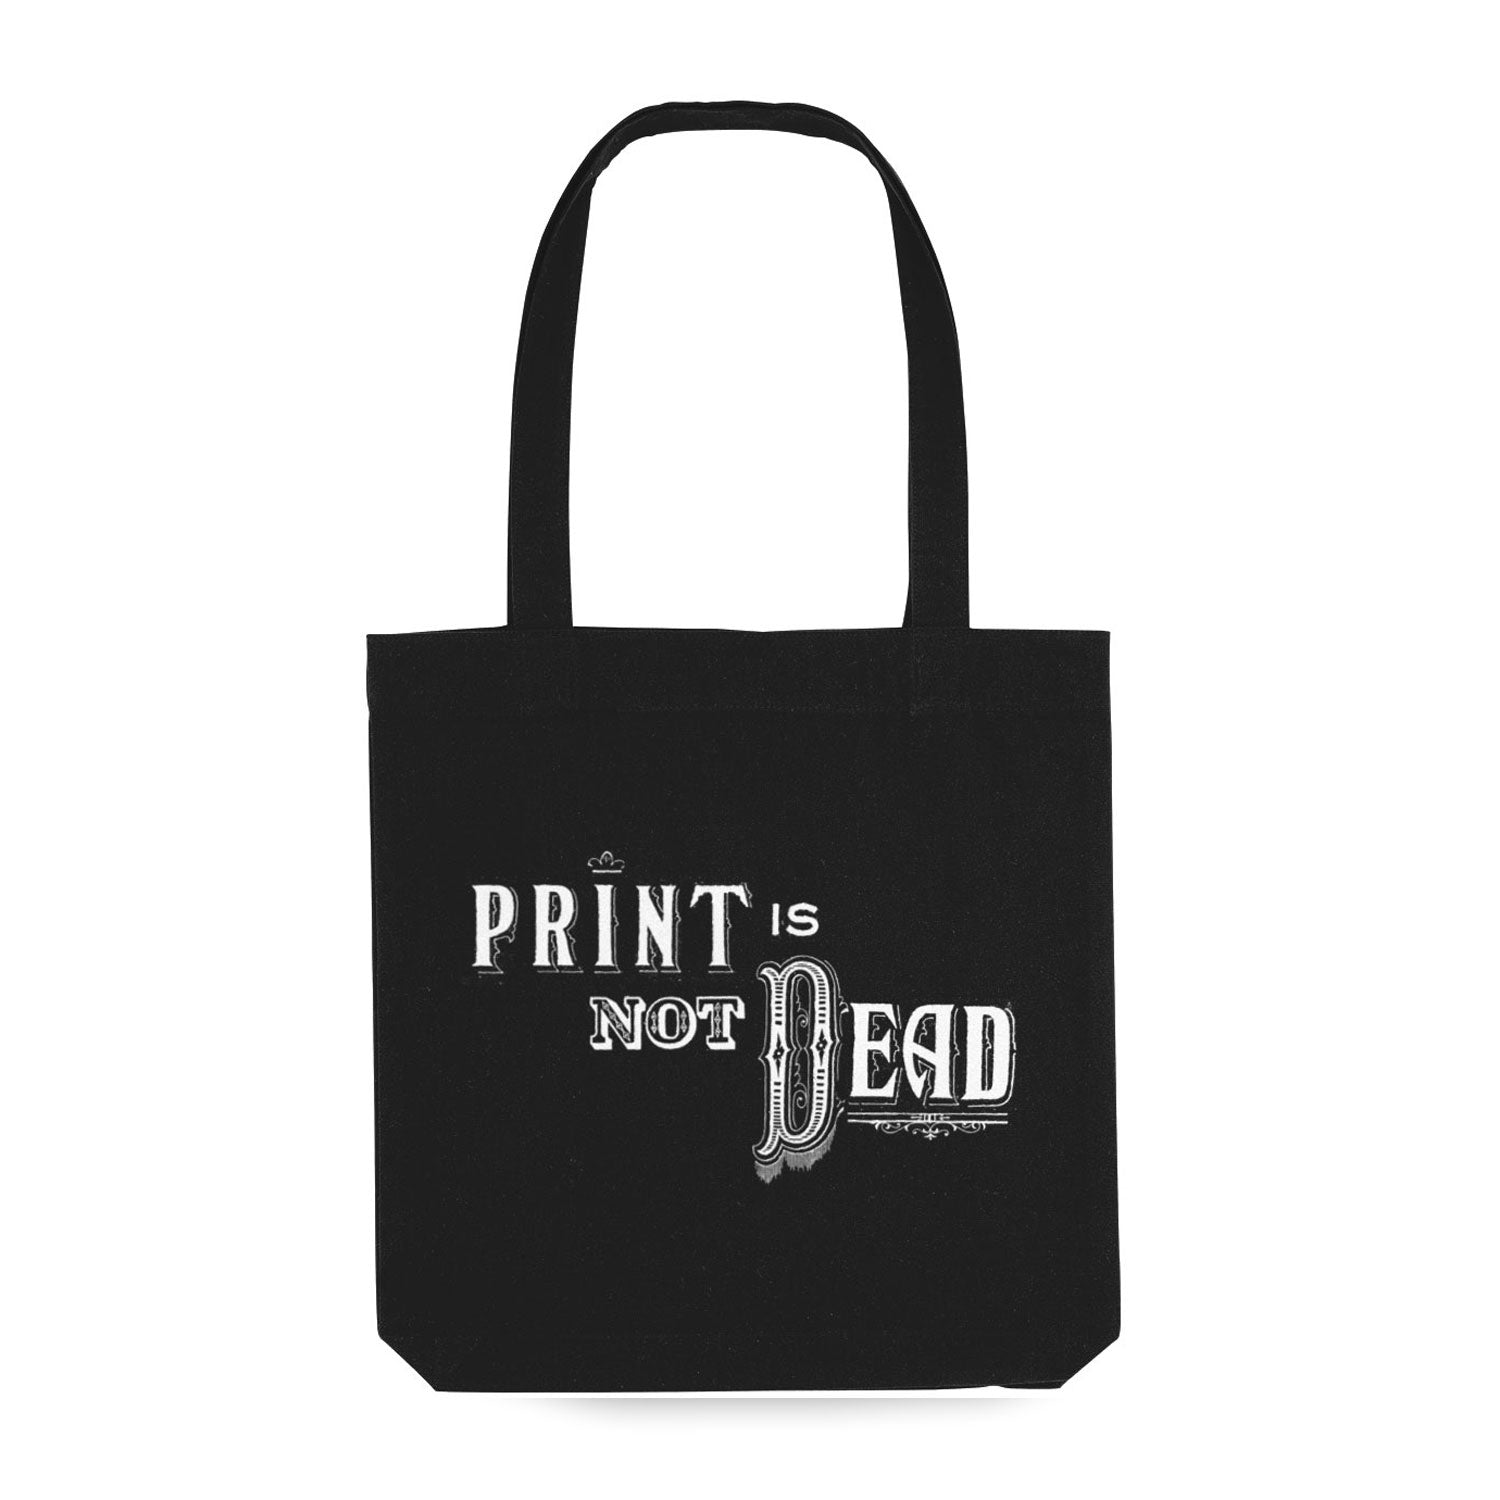 black tote bag with vintage lettering in white reading 'print is not dead'